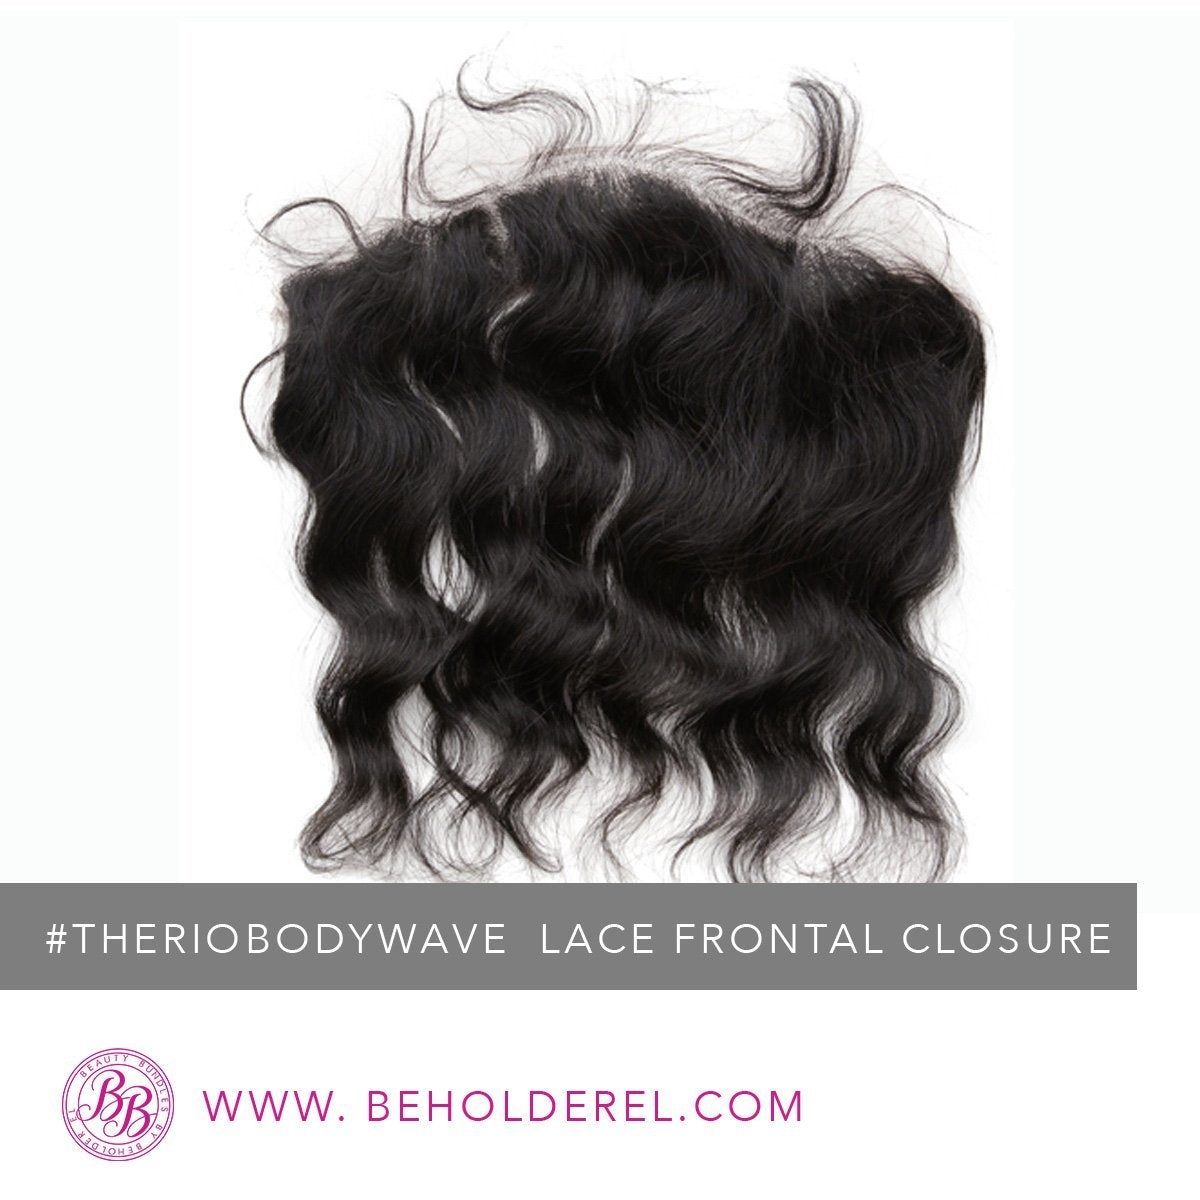 Brazilian Body Wave<br>HD Lace Frontal Closure<br>(The Rio Body Wave Lace Frontal Closure)